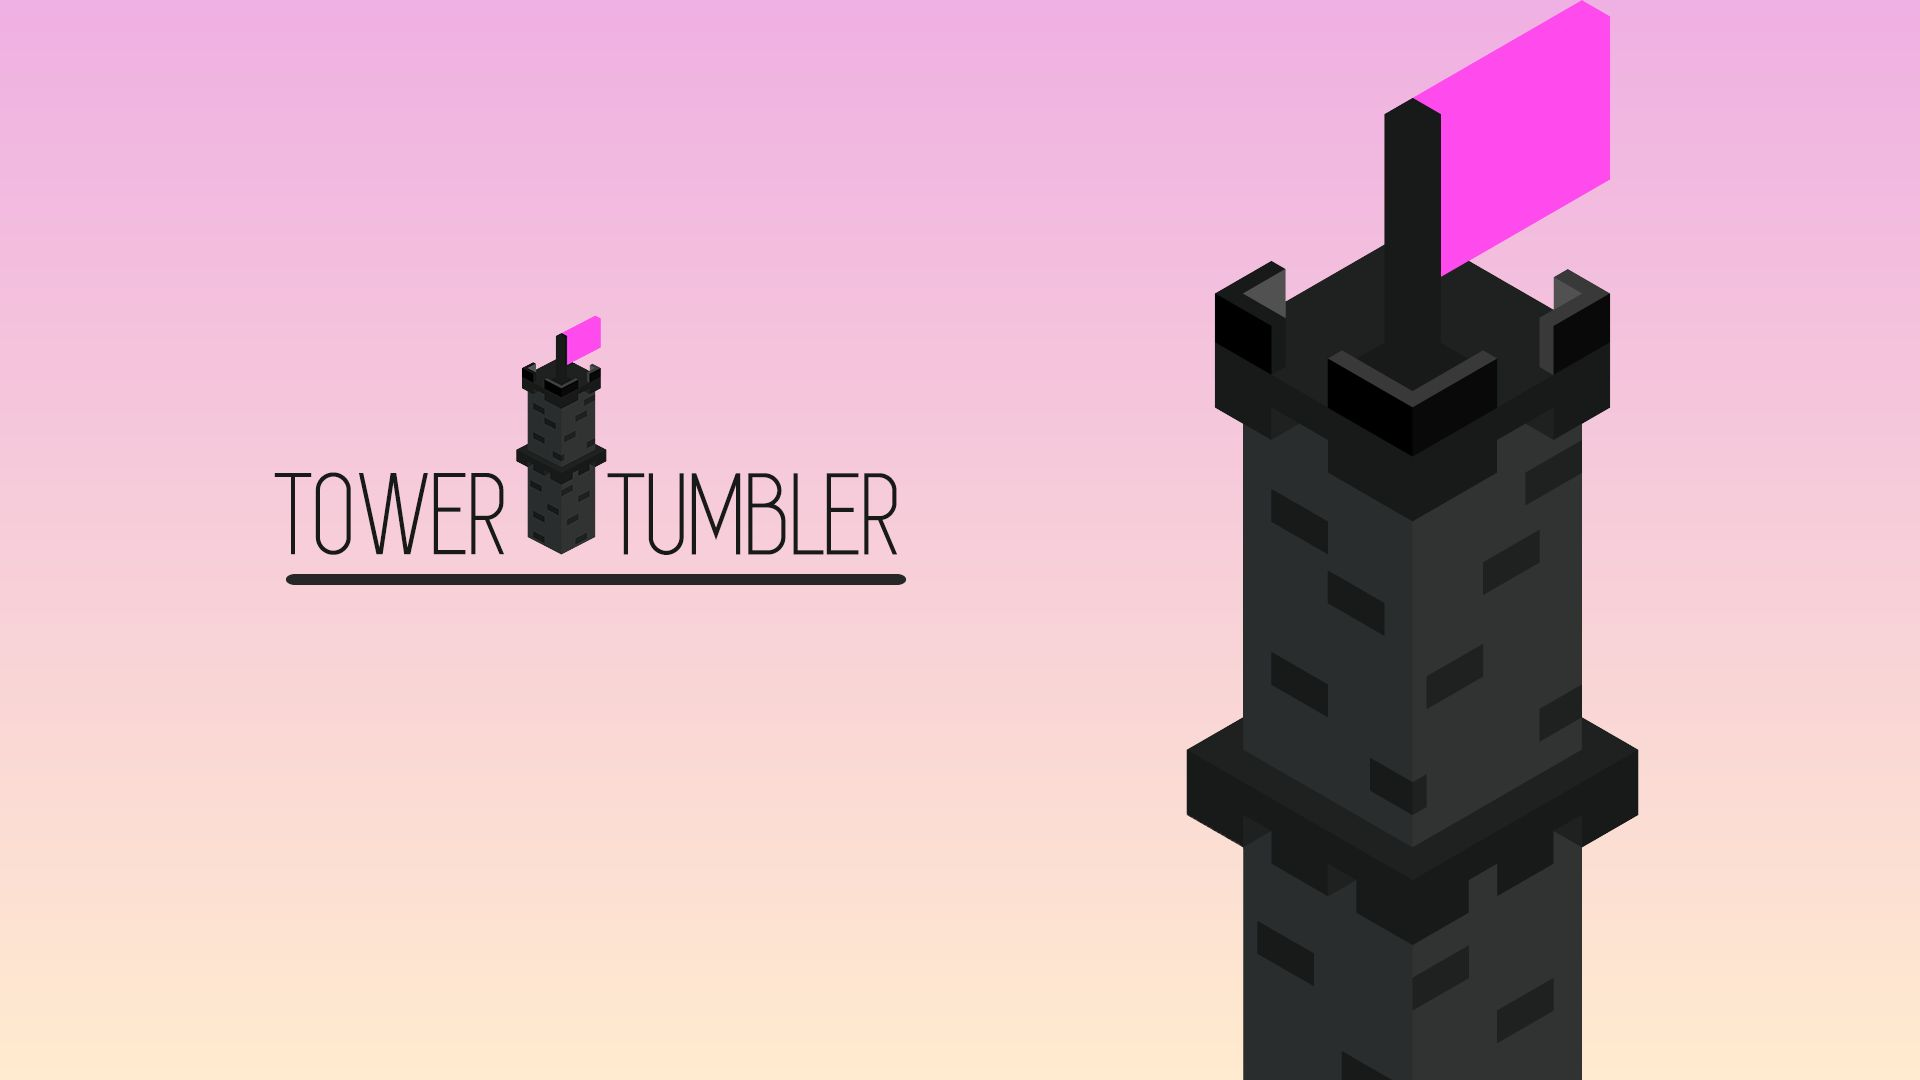 Tower Tumbler Buildbox Template Screenshot 1